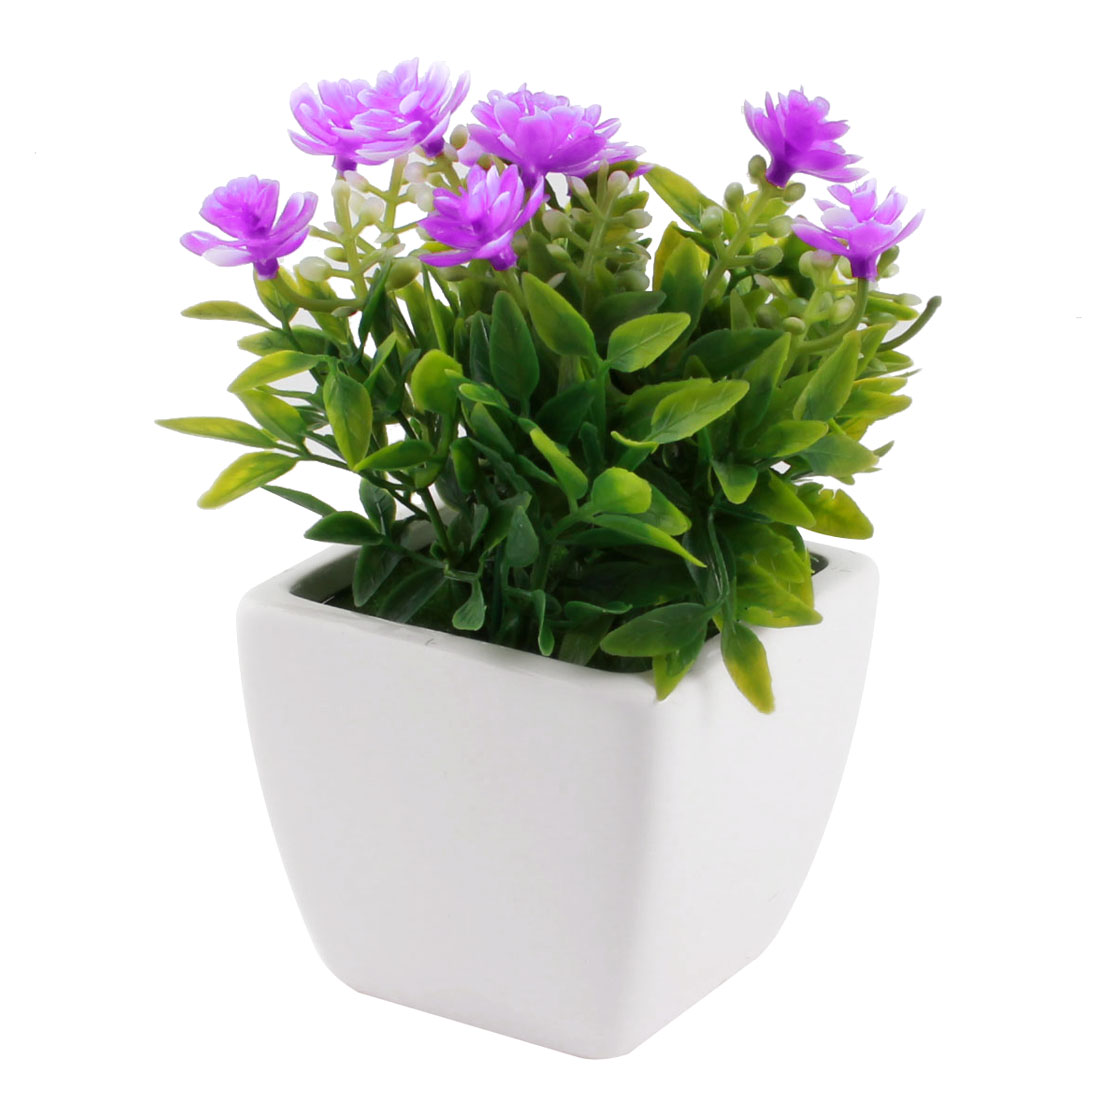 Table Ornament Green Leaves Purple Plastic Flowers Manmade Pot Flowerpot